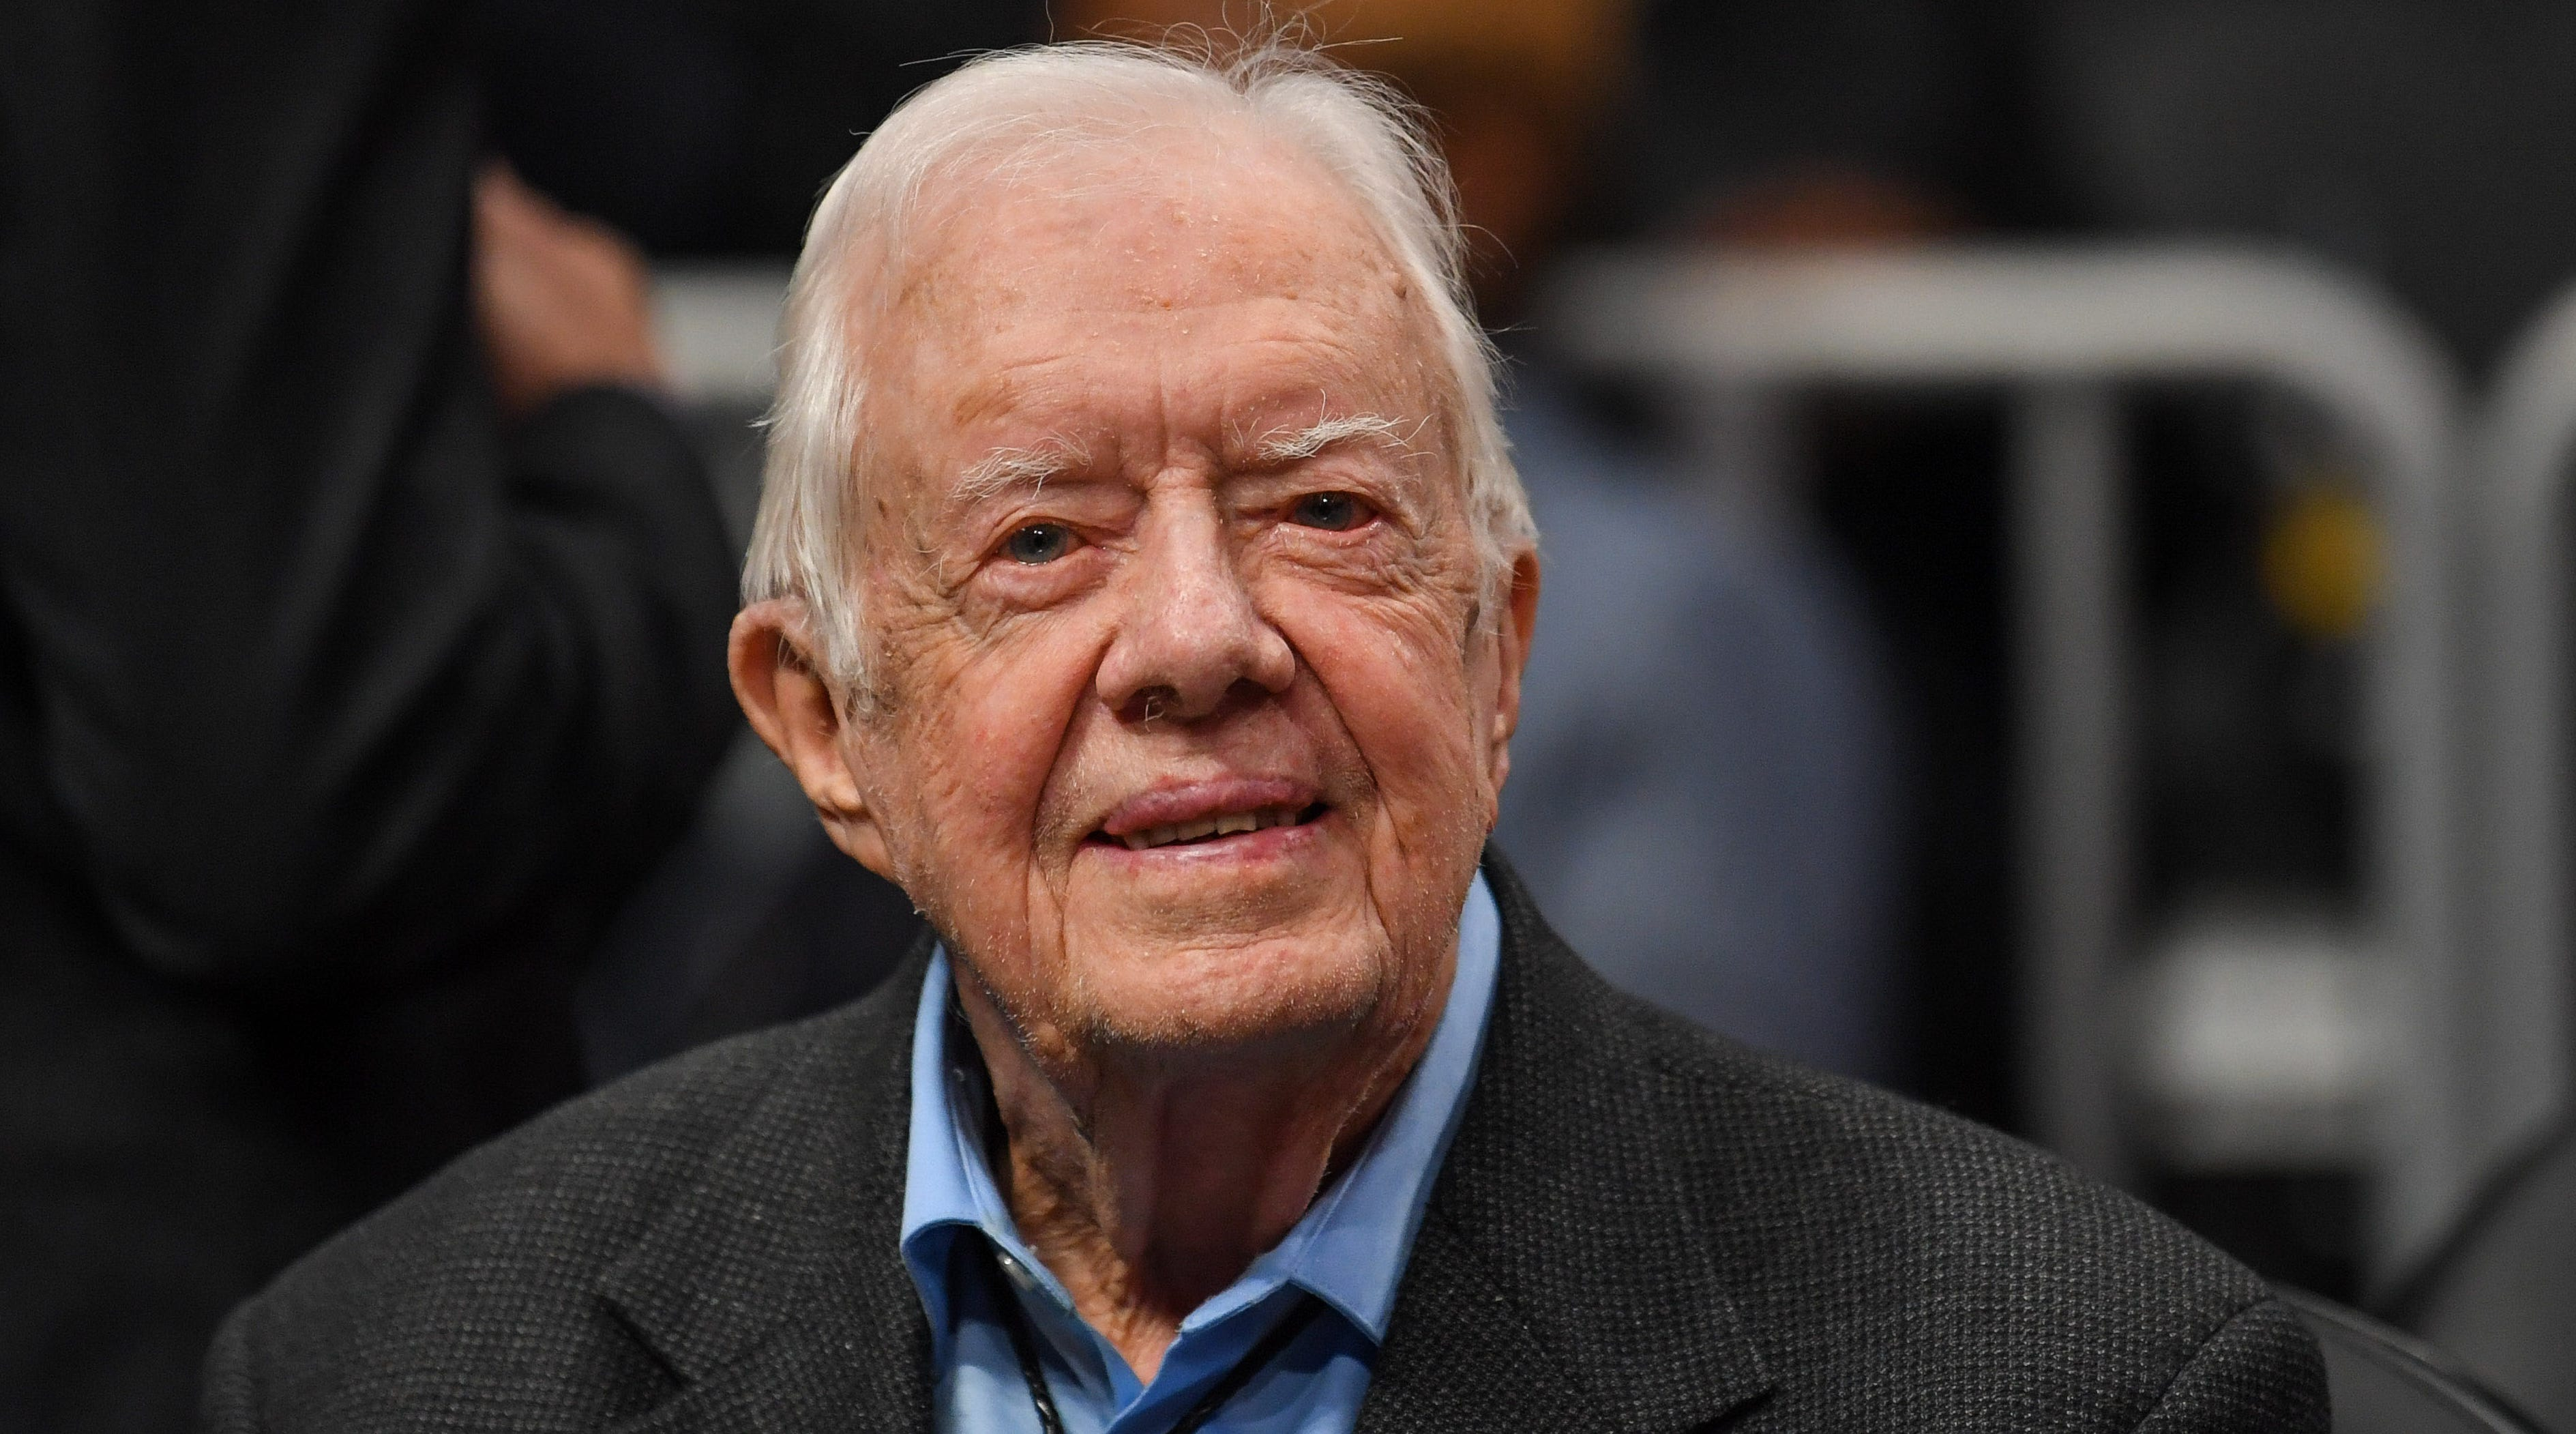 Former President Jimmy Carter at the game between the Atlanta Hawks and the New York Knicks at State Farm Arena in Atlanta, Feb. 14, 2019.